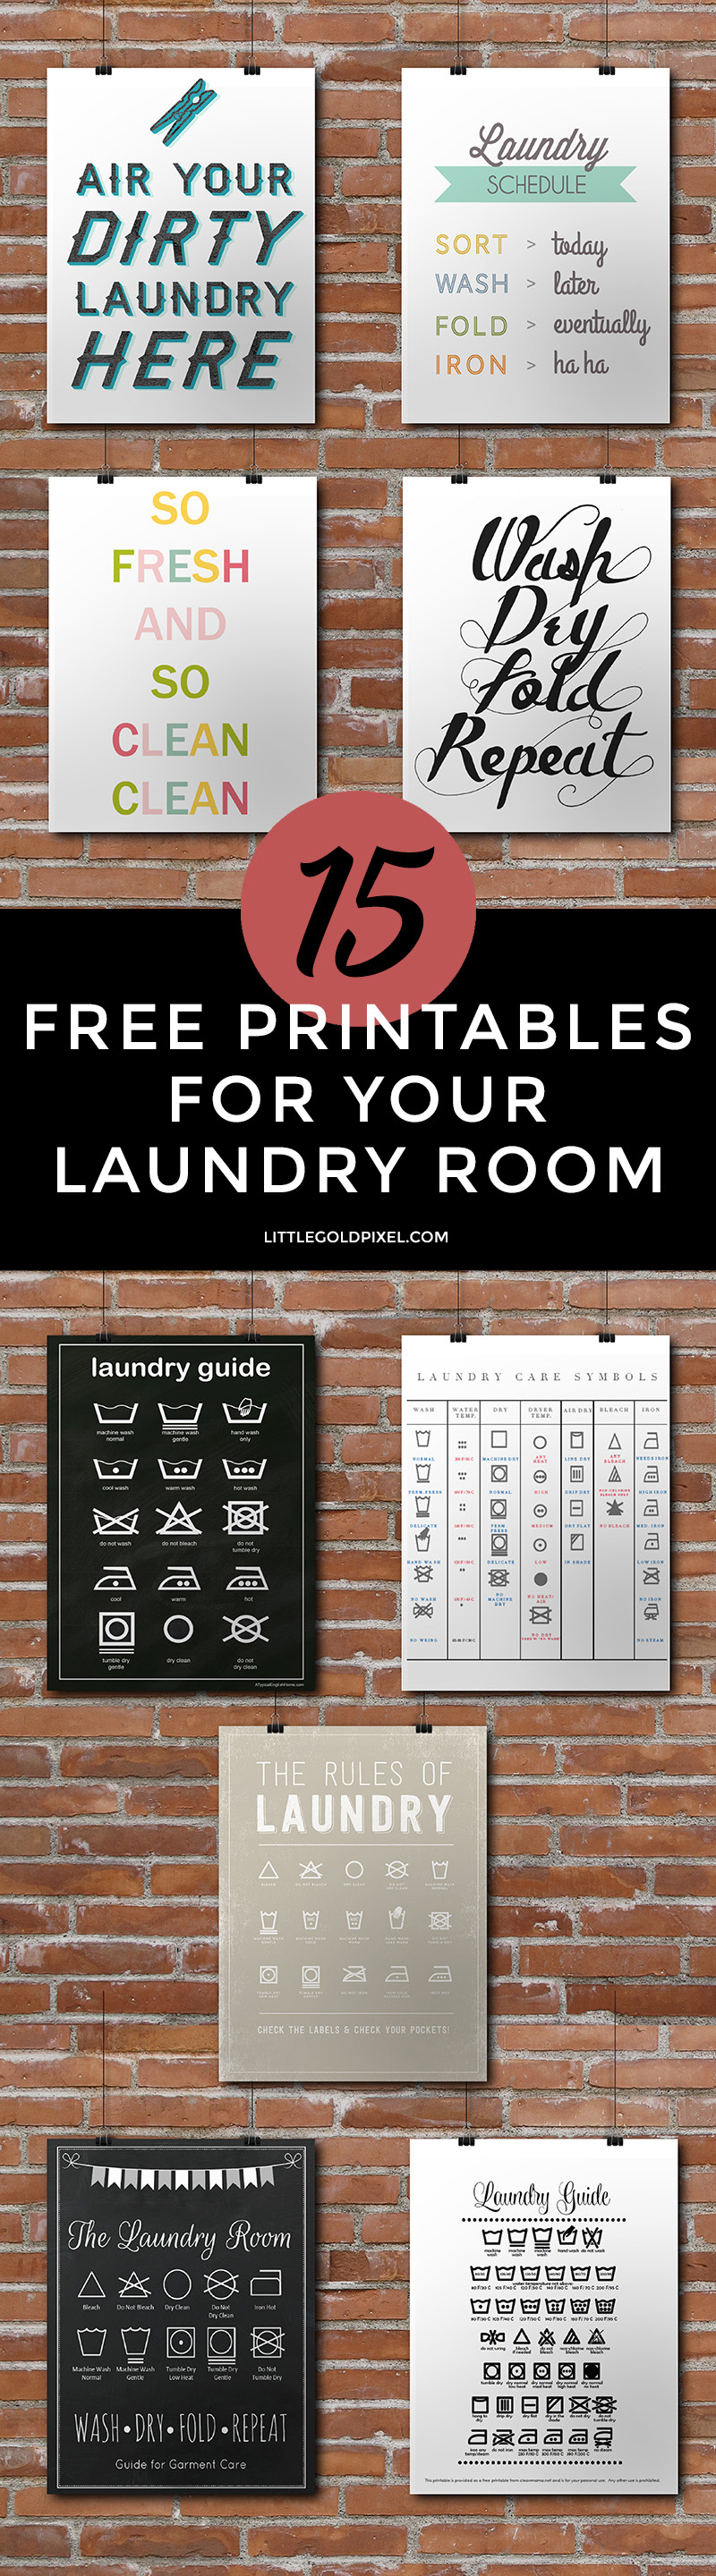 Laundry Room Free Printable Roundup